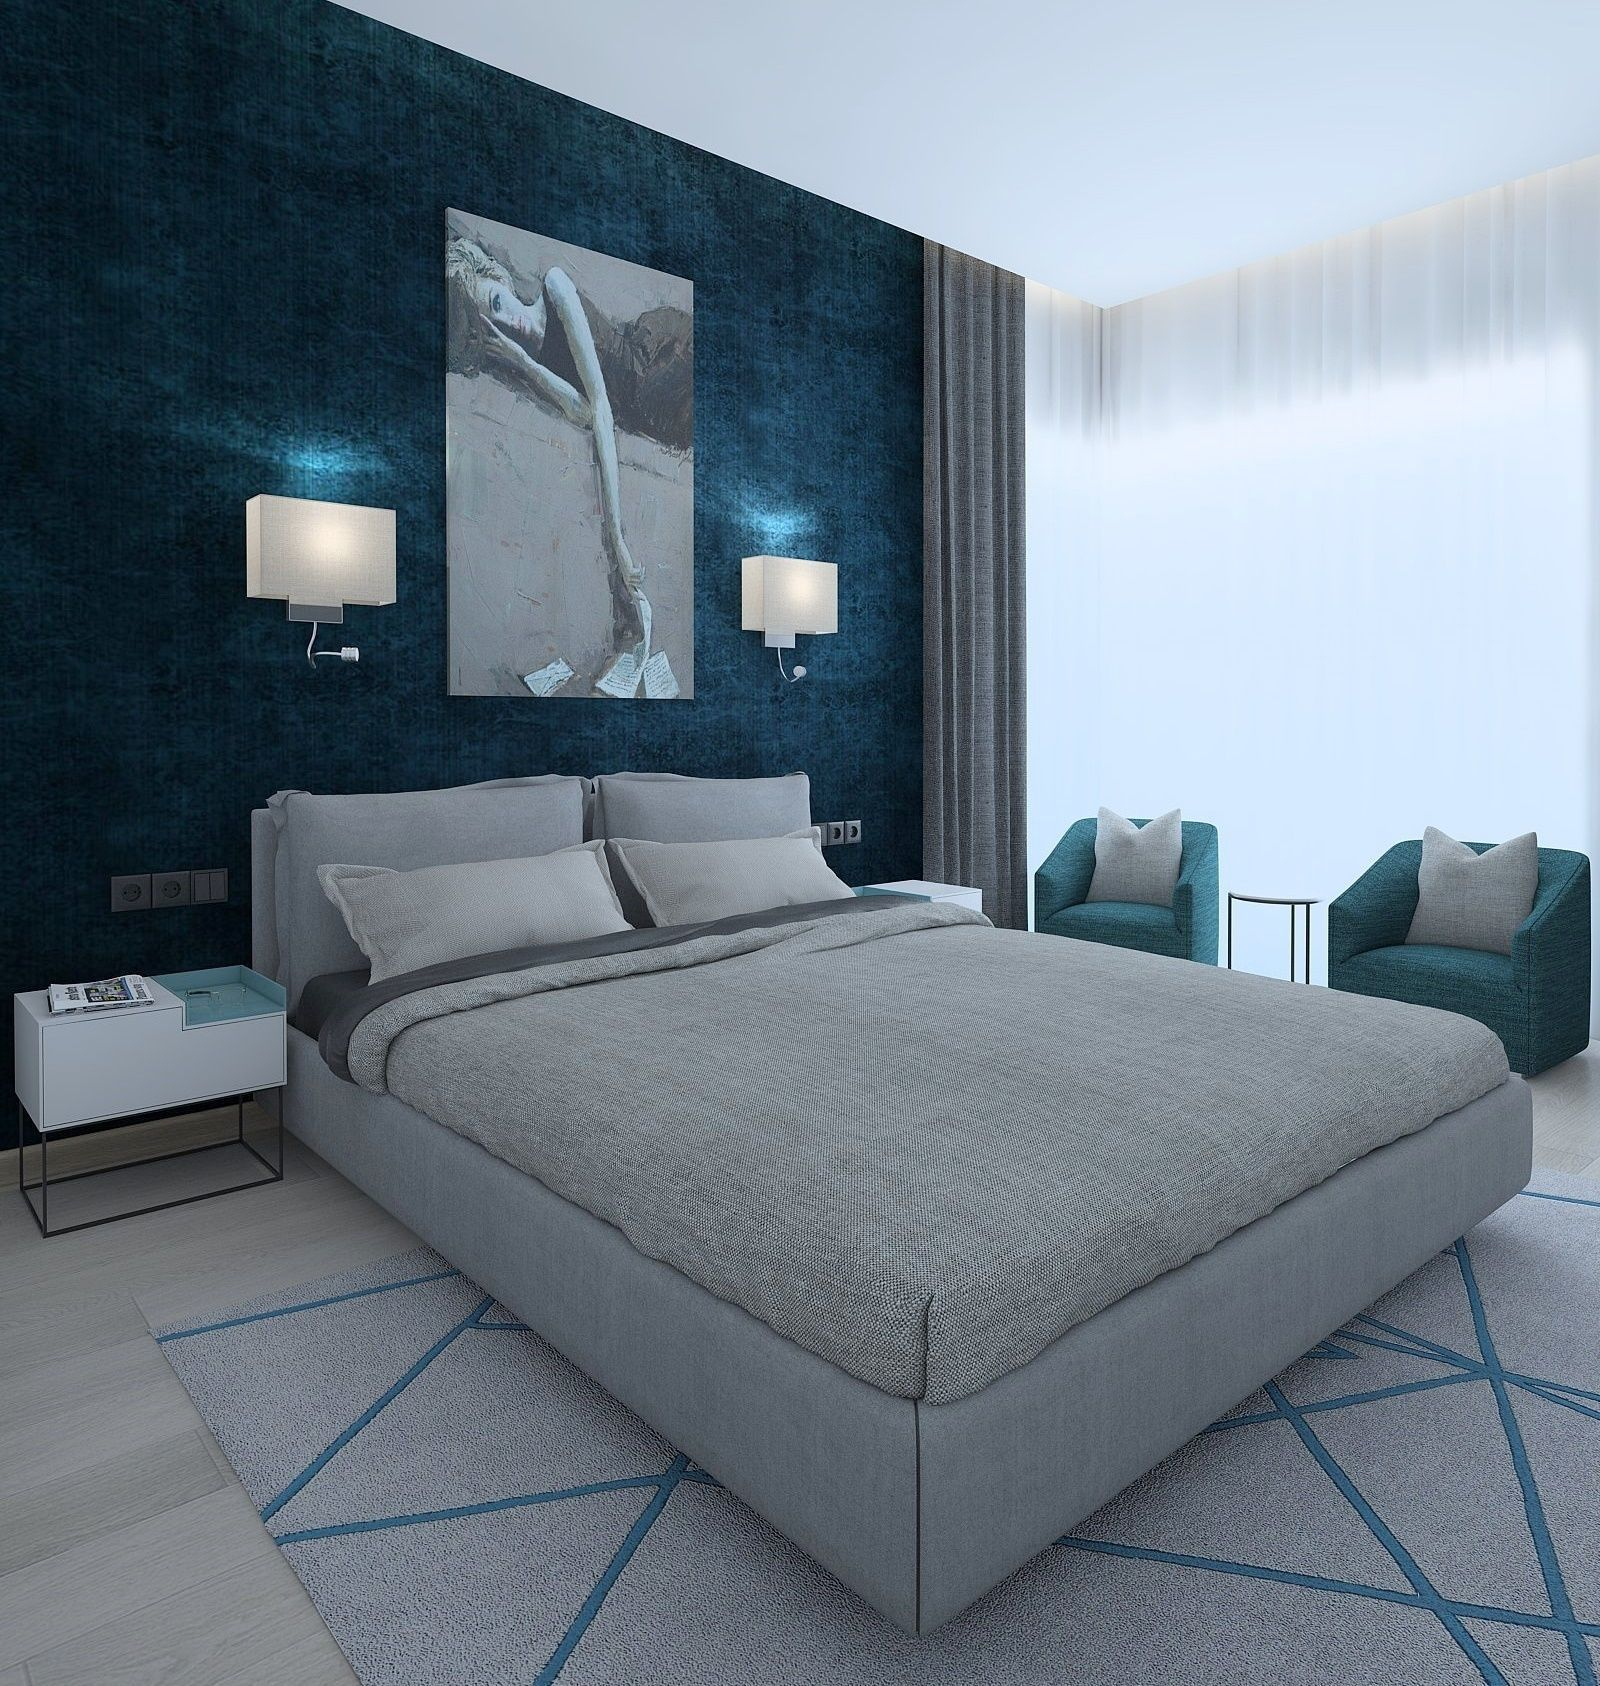 Modern Bedroom With Green Wallpaper 3d Cgtrader throughout 14 Some of the Coolest Initiatives of How to Makeover Modern Bedroom Wallpaper